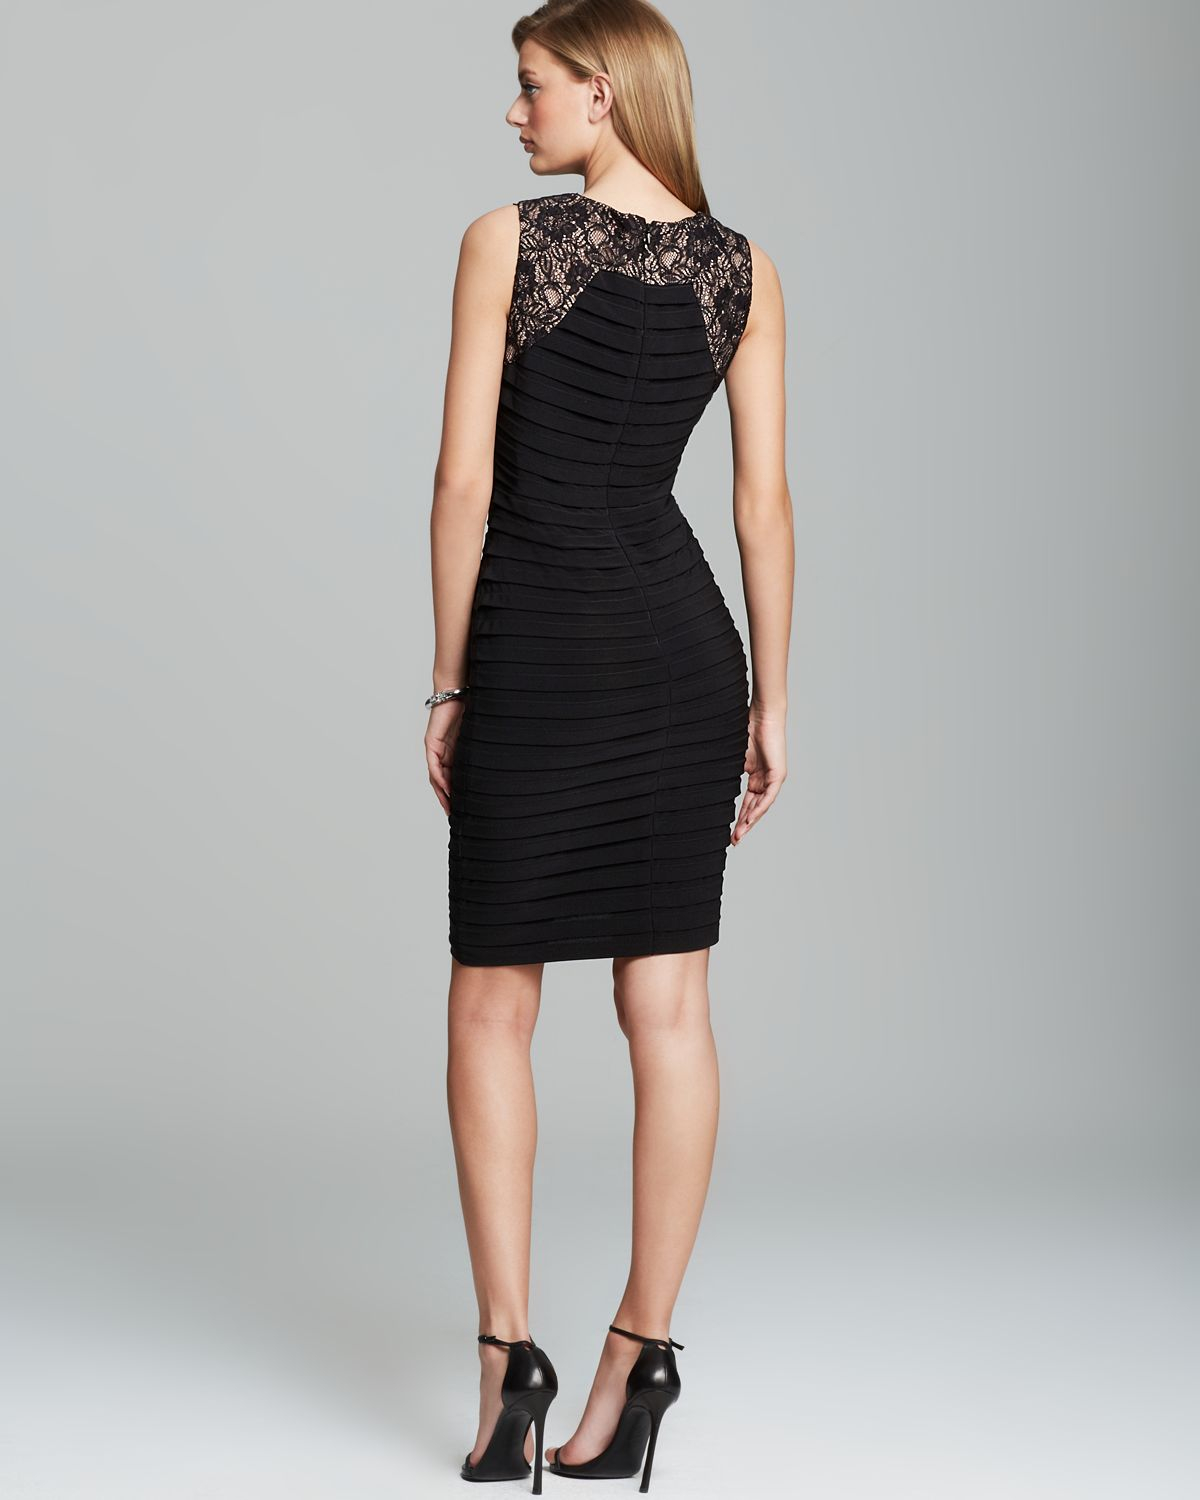 c3b5c9cb Gallery. Previously sold at: Bloomingdale's · Women's Adrianna Papell Lace  Dress Women's Adrianna Papell Sheath Dress